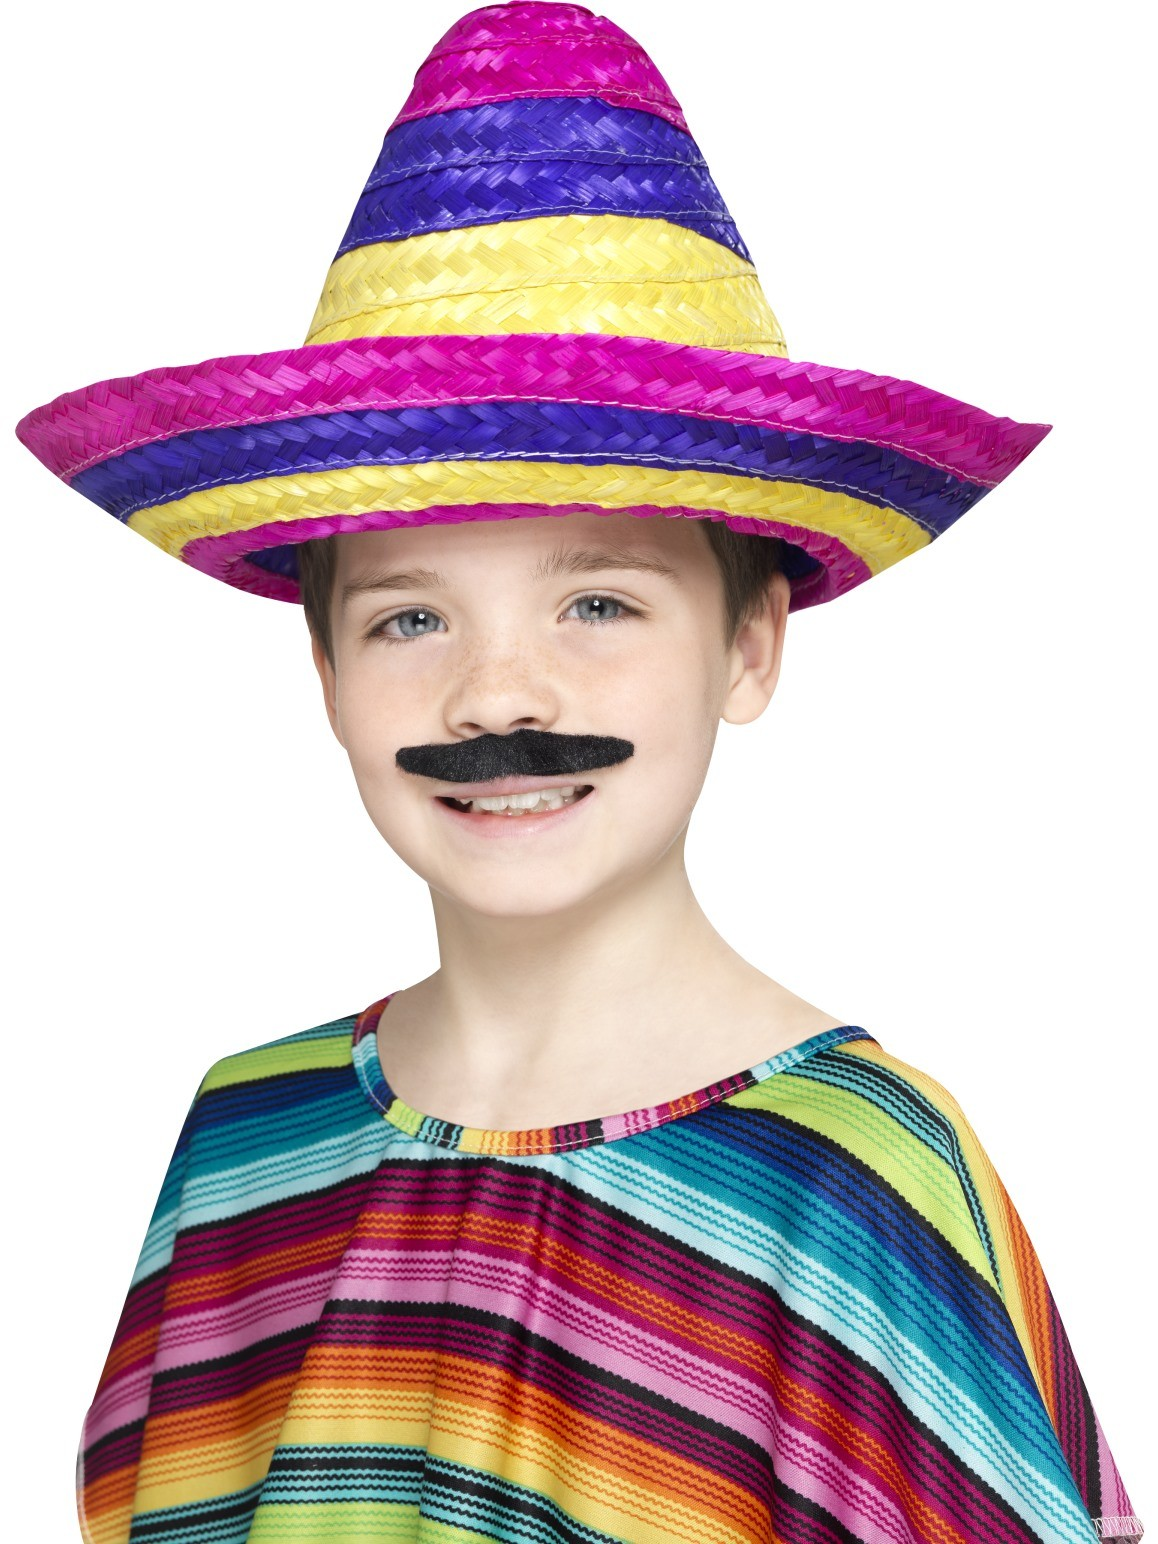 MEXICAN SOMBRERO - CHILD